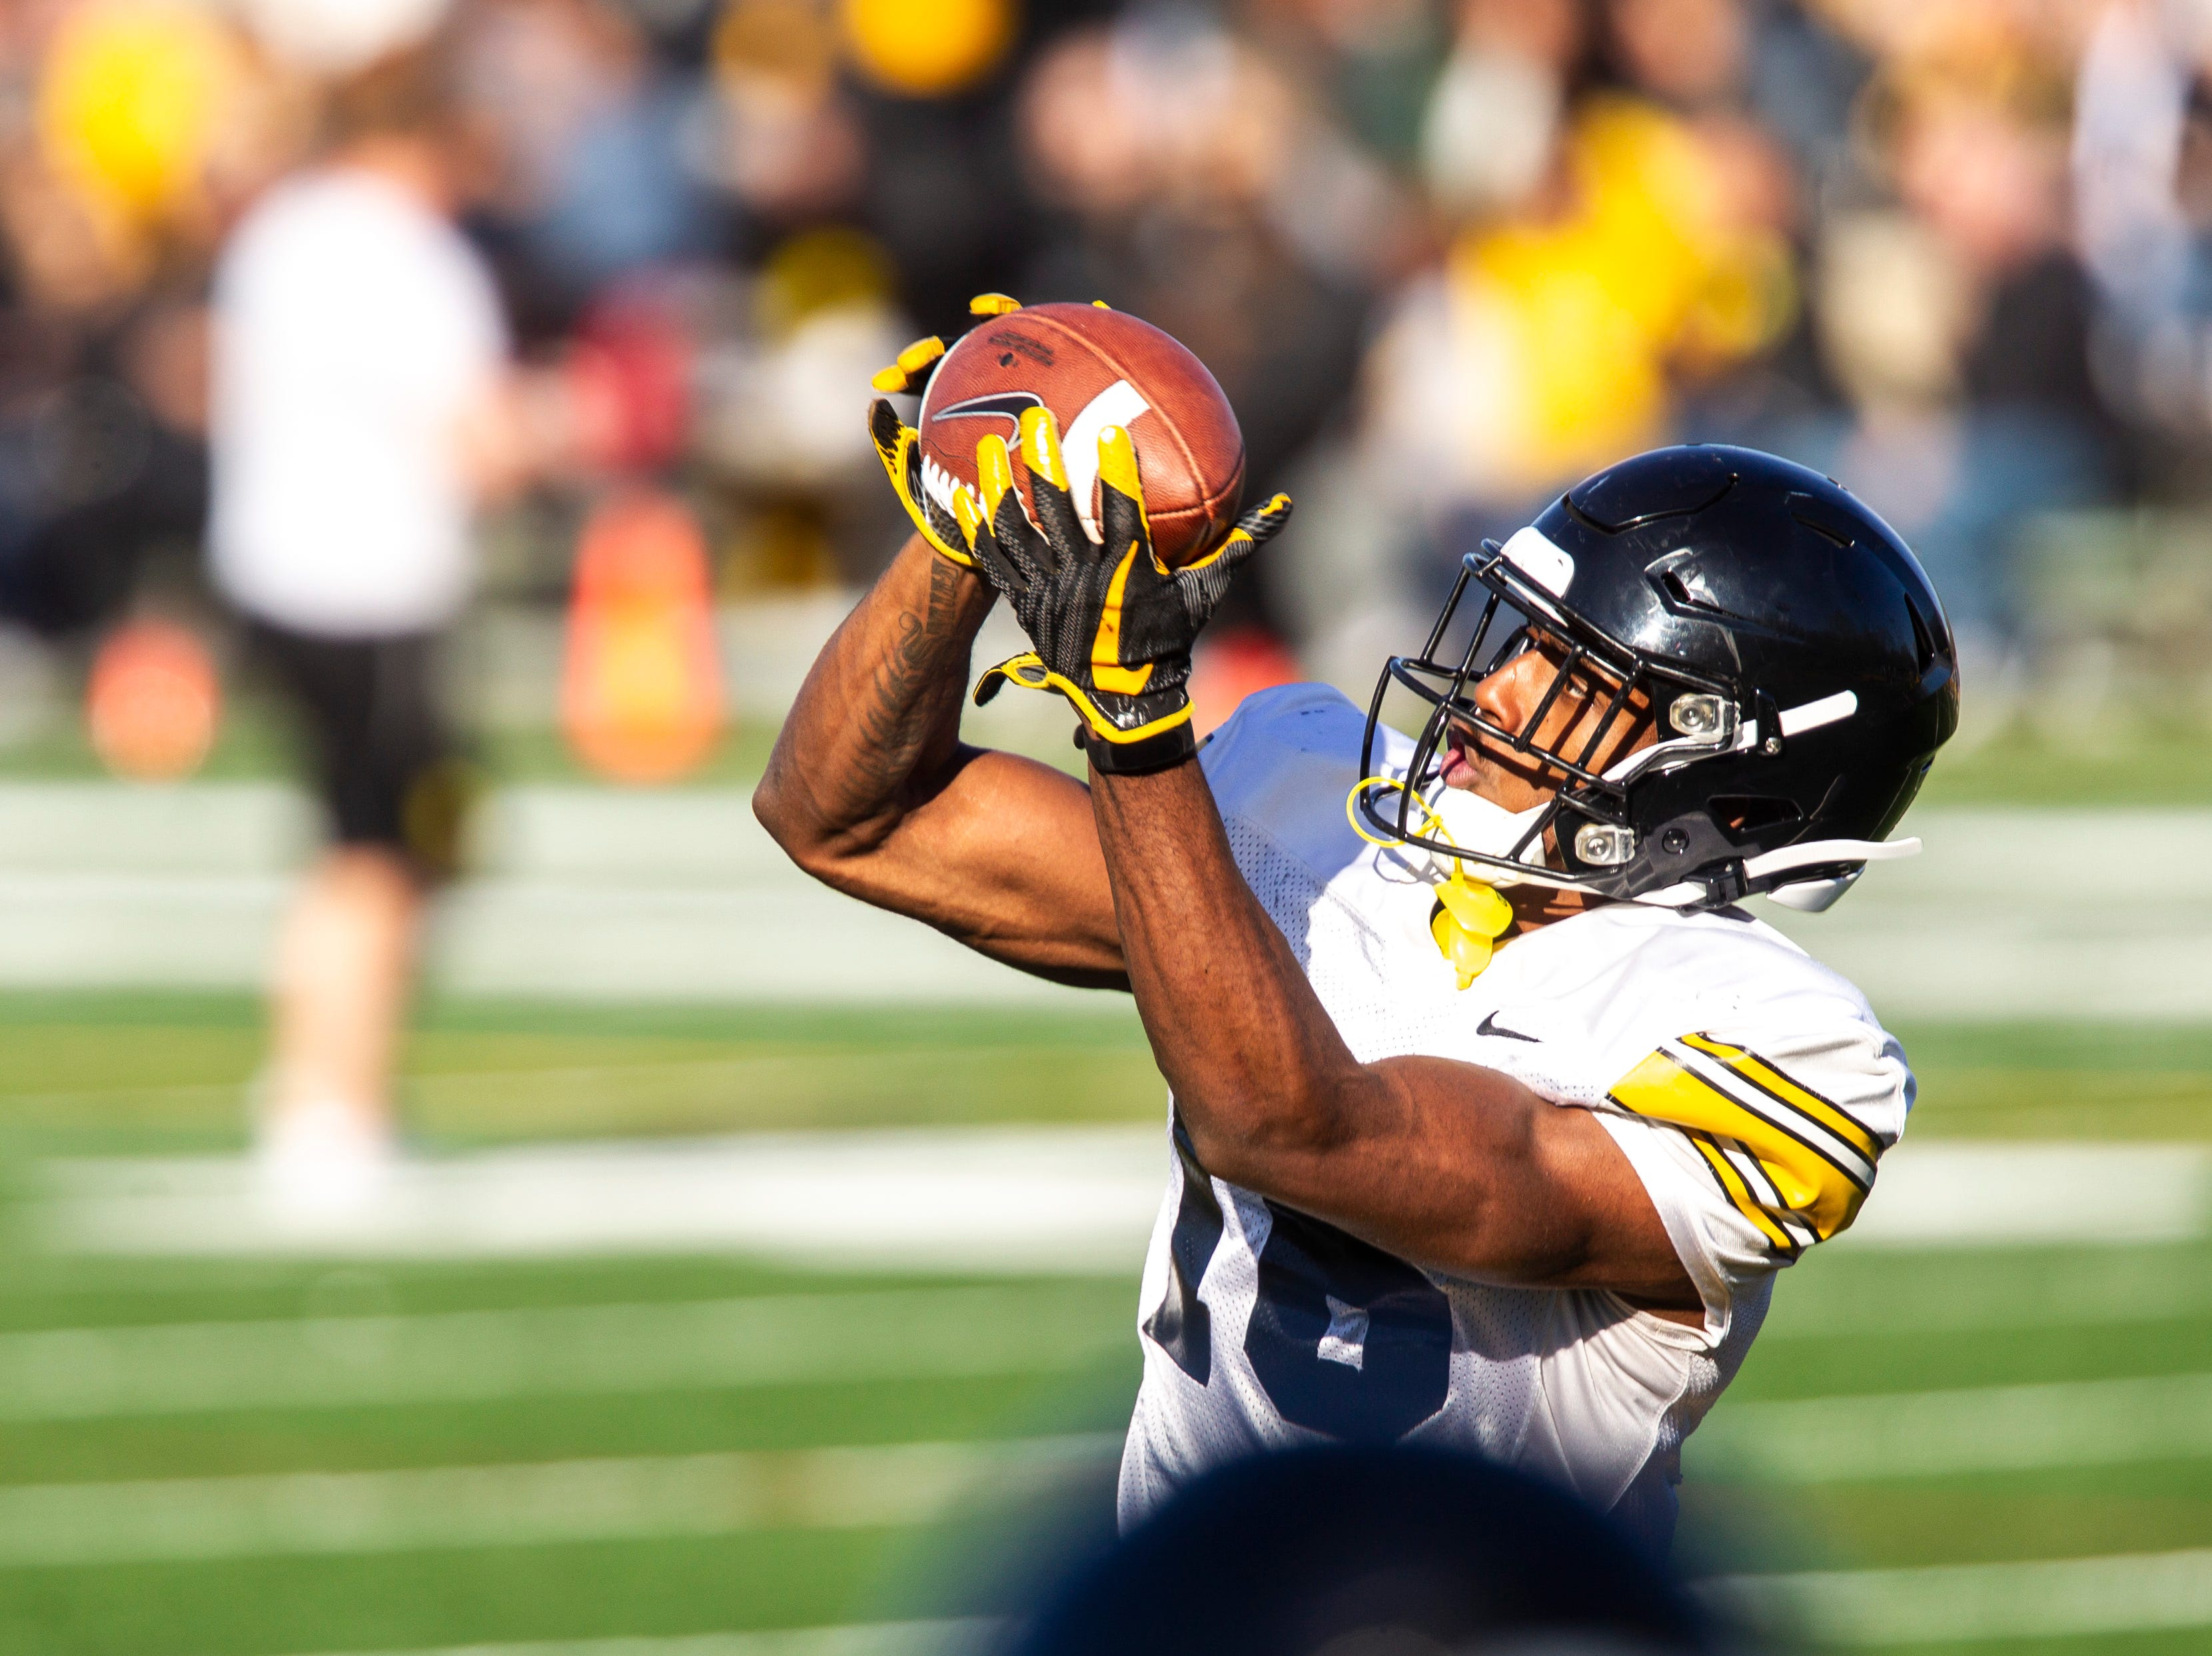 Iowa defensive back Terry Roberts (16) catches a pass while running a drill during the final spring football practice, Friday, April 26, 2019, at the University of Iowa outdoor practice facility in Iowa City, Iowa.